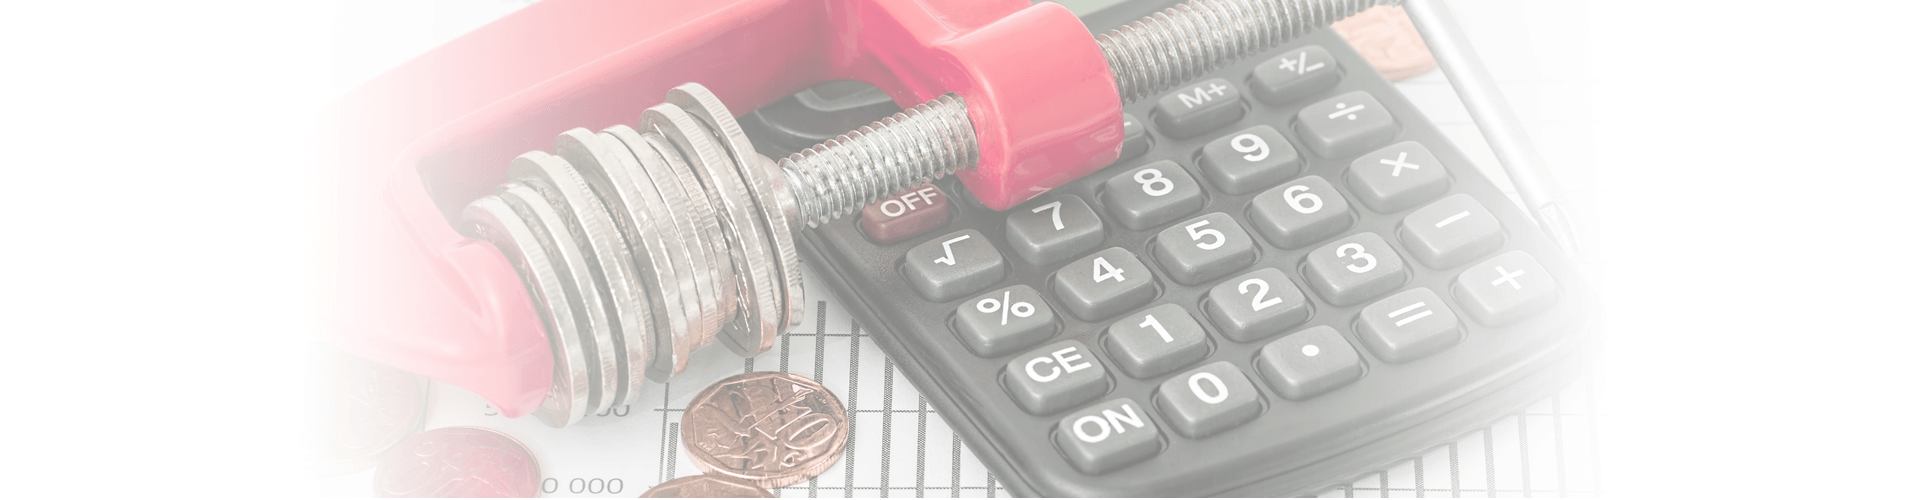 calculator and coins with a chart